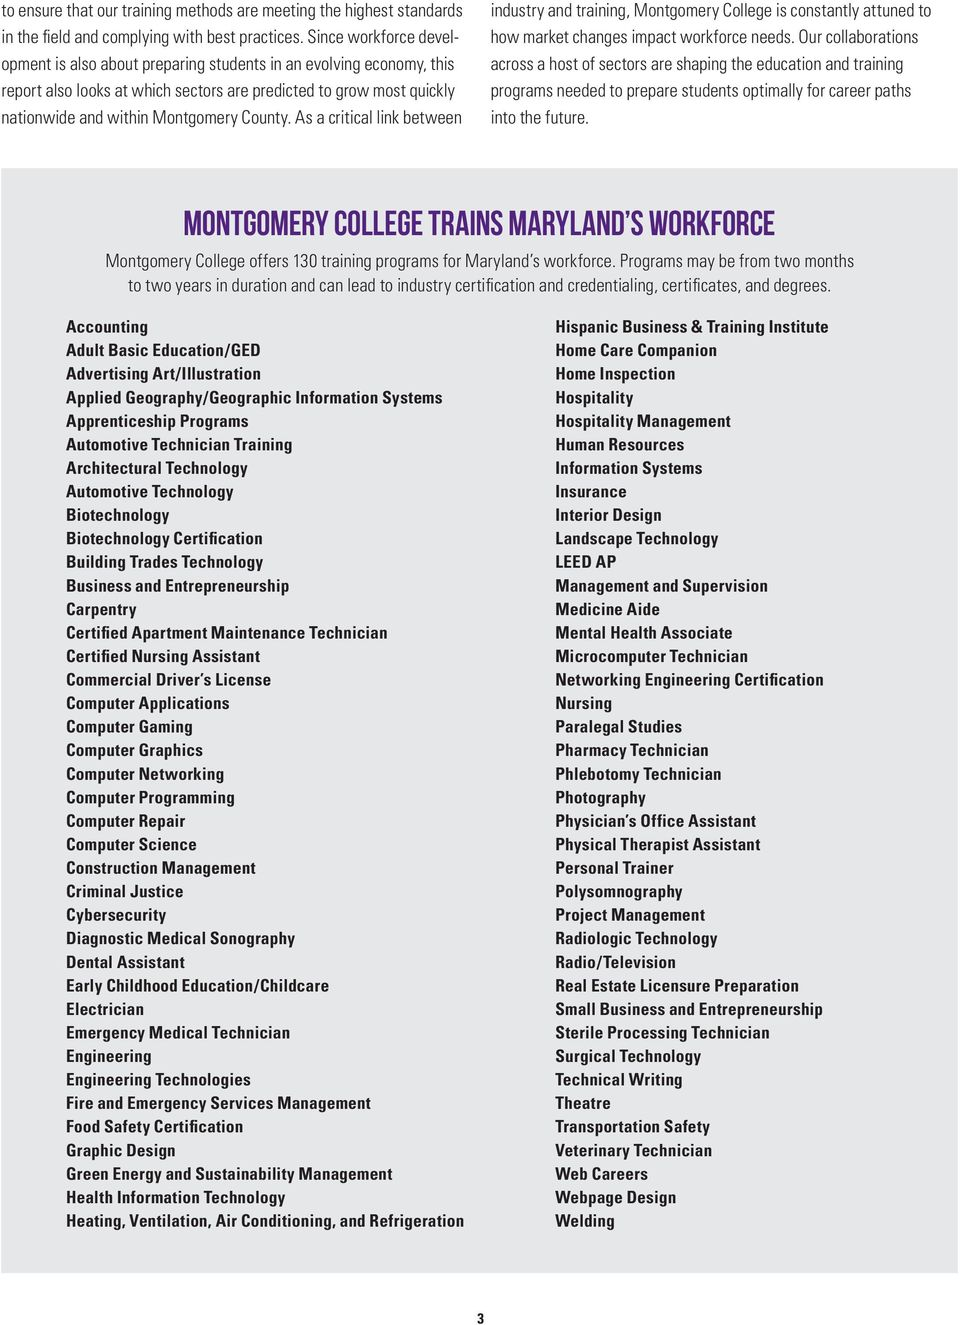 As a critical link between industry and training, Montgomery College is constantly attuned to how market changes impact workforce needs.